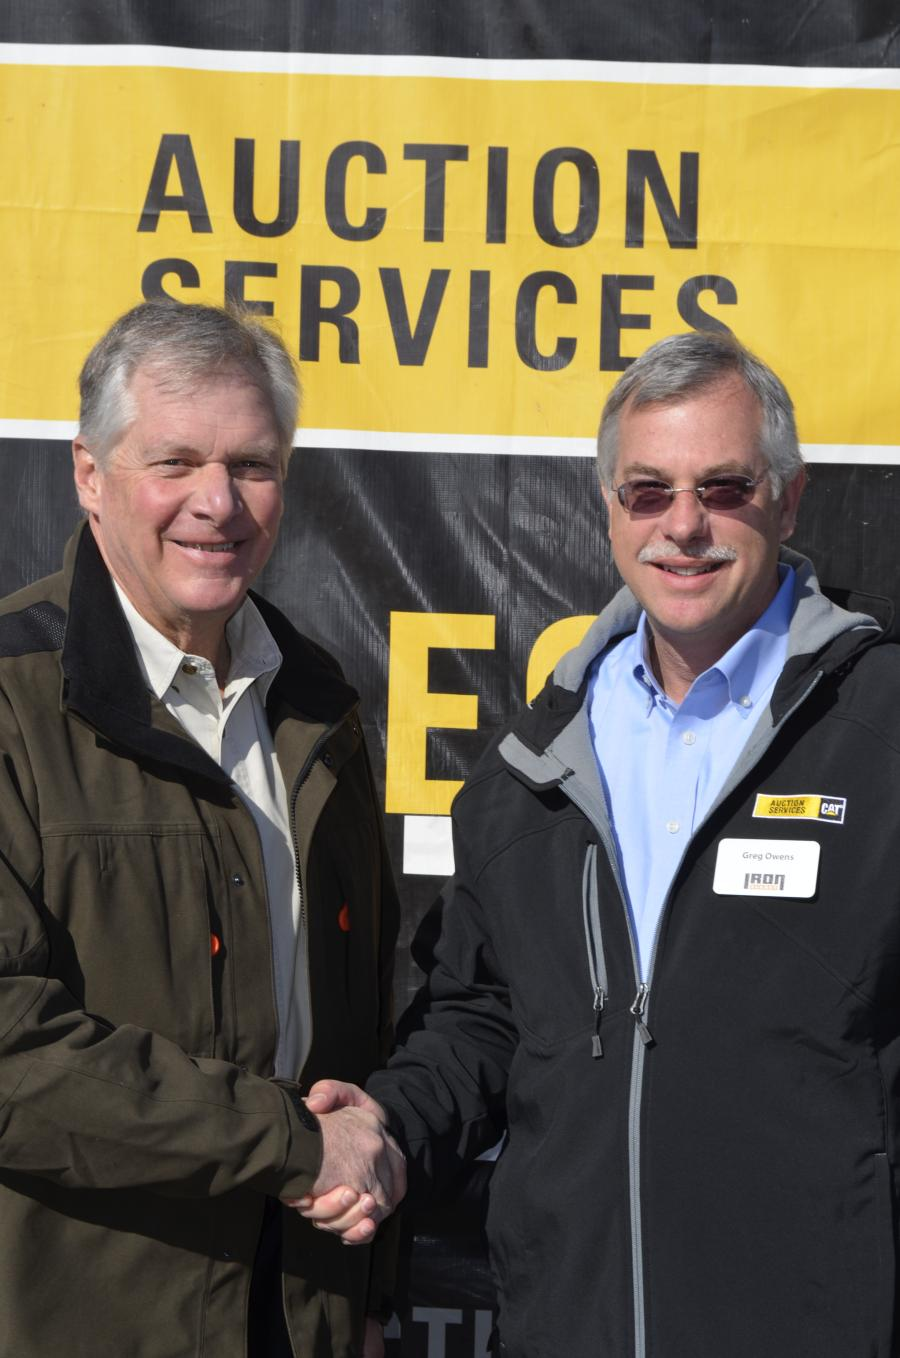 Caterpillar Chief Executive Officer Doug Oberhelman (L) and IronPlanet/Cat Auction Services  Chairman and CEO Greg Owens.